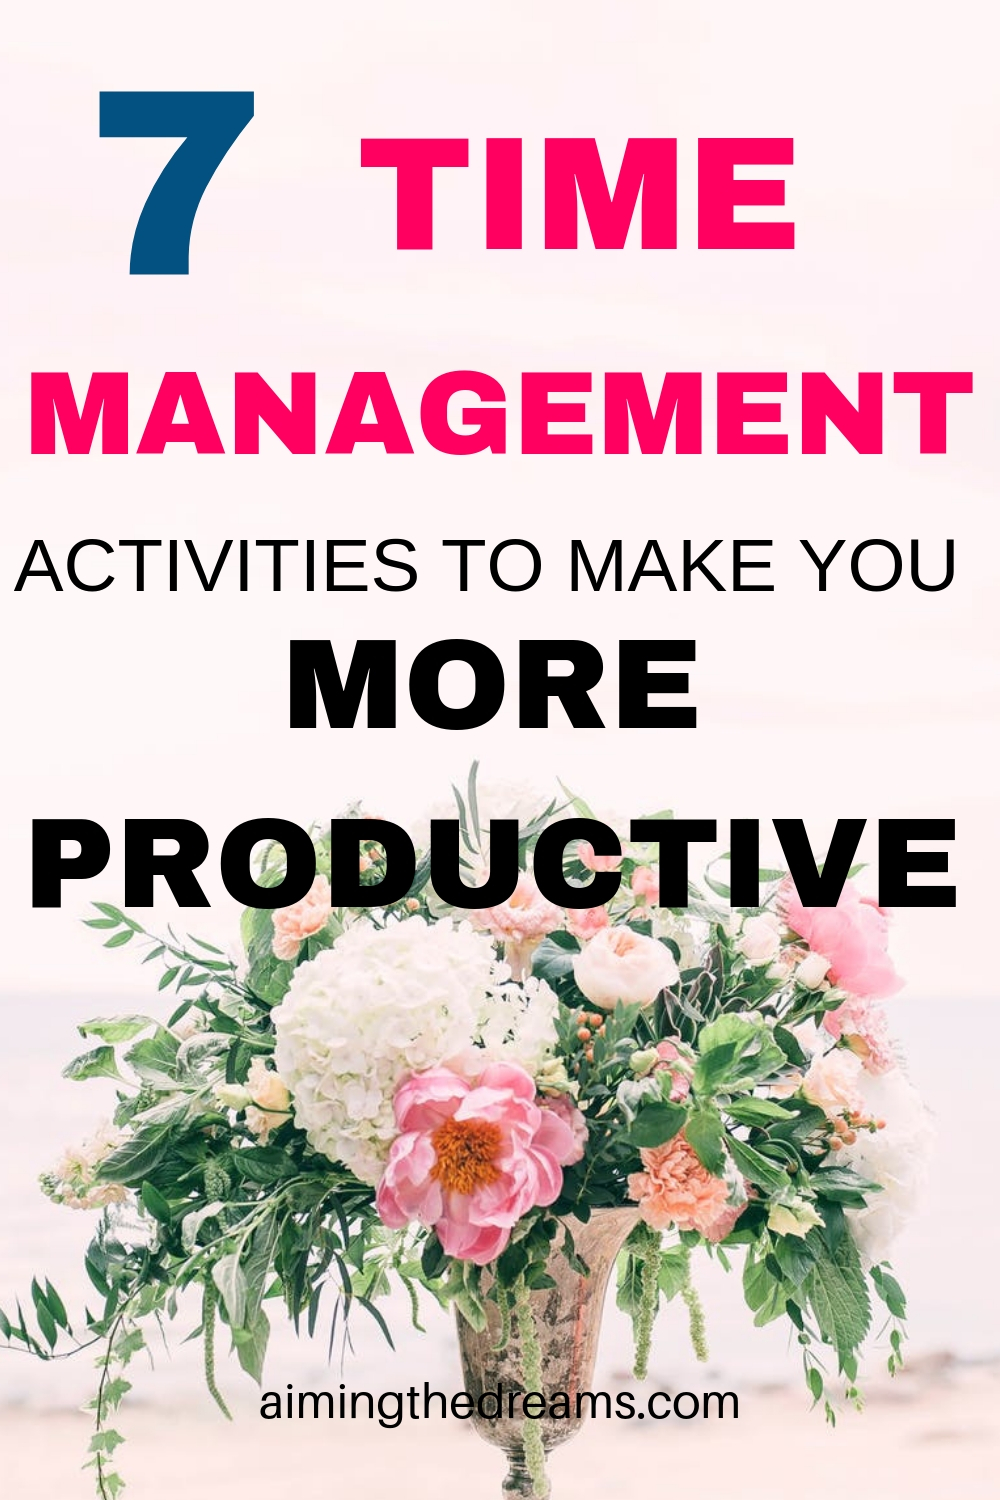 Time management activities to make you more productive and accomplish more in less time.